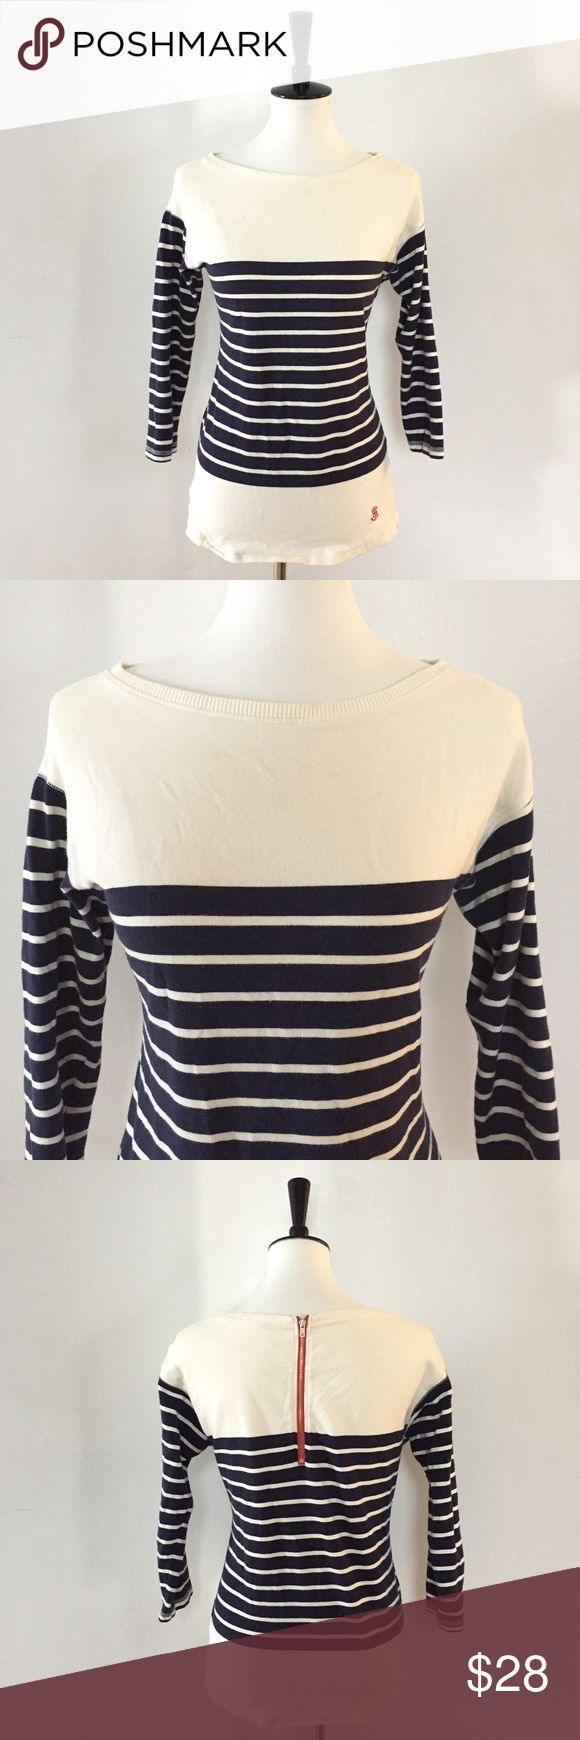 "[Tommy Hilfiger] nautical blue & white striped top -Size: no size tag, but it's a medium. Measurements below -Condition: great -Color: blue & white/off-white stripes and a red zipper on the back -Closure: zips down the back -Style: striped nautical blouse -Extra Notes: -B2 *Measurements: -Bust: 18.5"" flat -Length: 25.25"" -Waist: 17.25"" flat -Sleeve: 15.5"" from shoulder Bundling is fun, check out my other items! My home is smoke free. No trades, holds, modeling, or negotiations in the…"